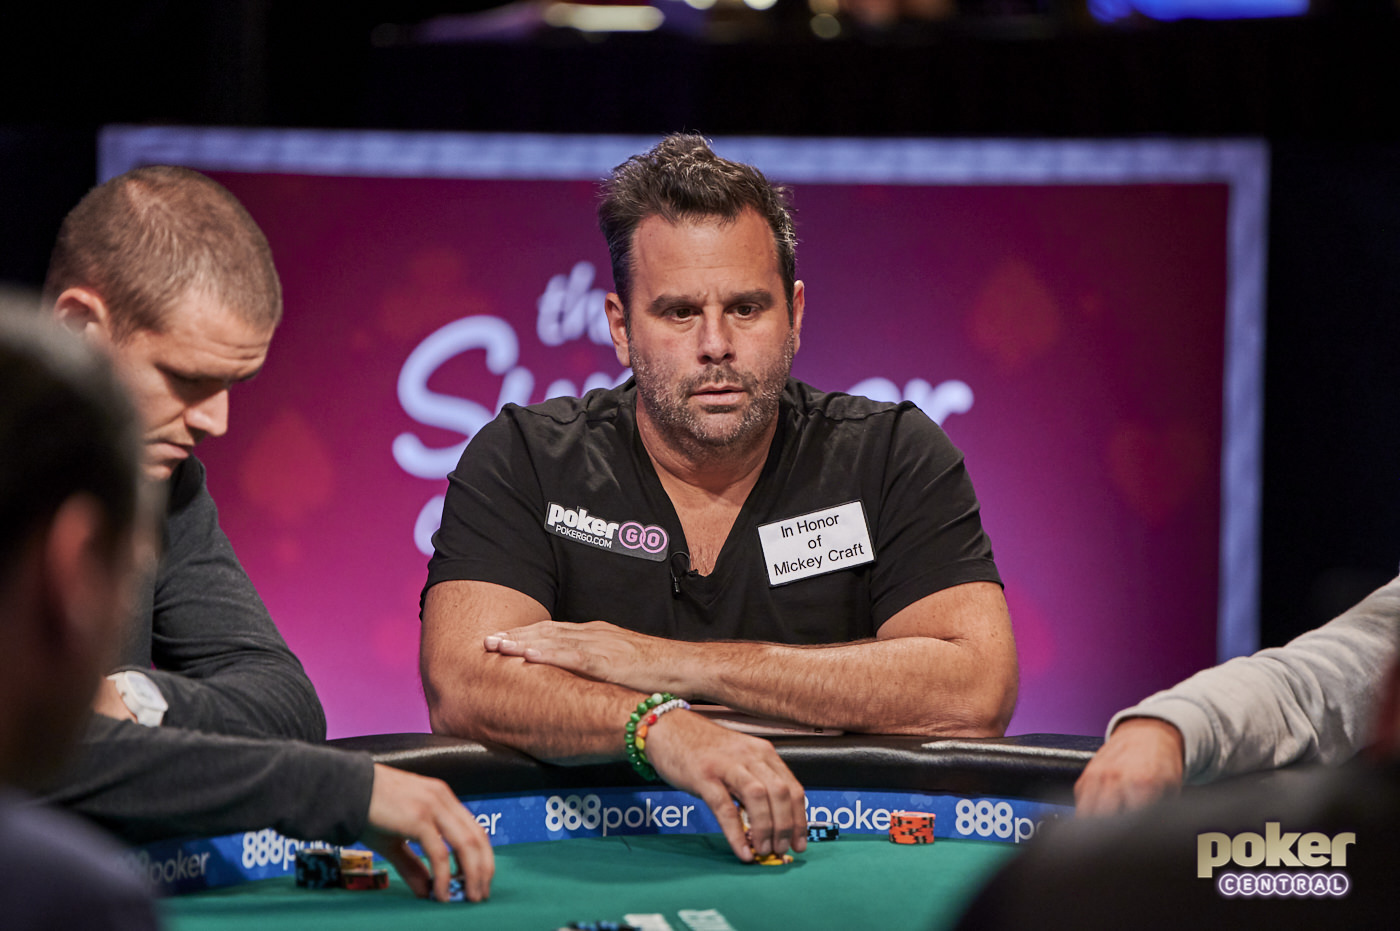 Randall Emmett in action during the 2019 World Series of Poker where he fell just short of his first bracelet.